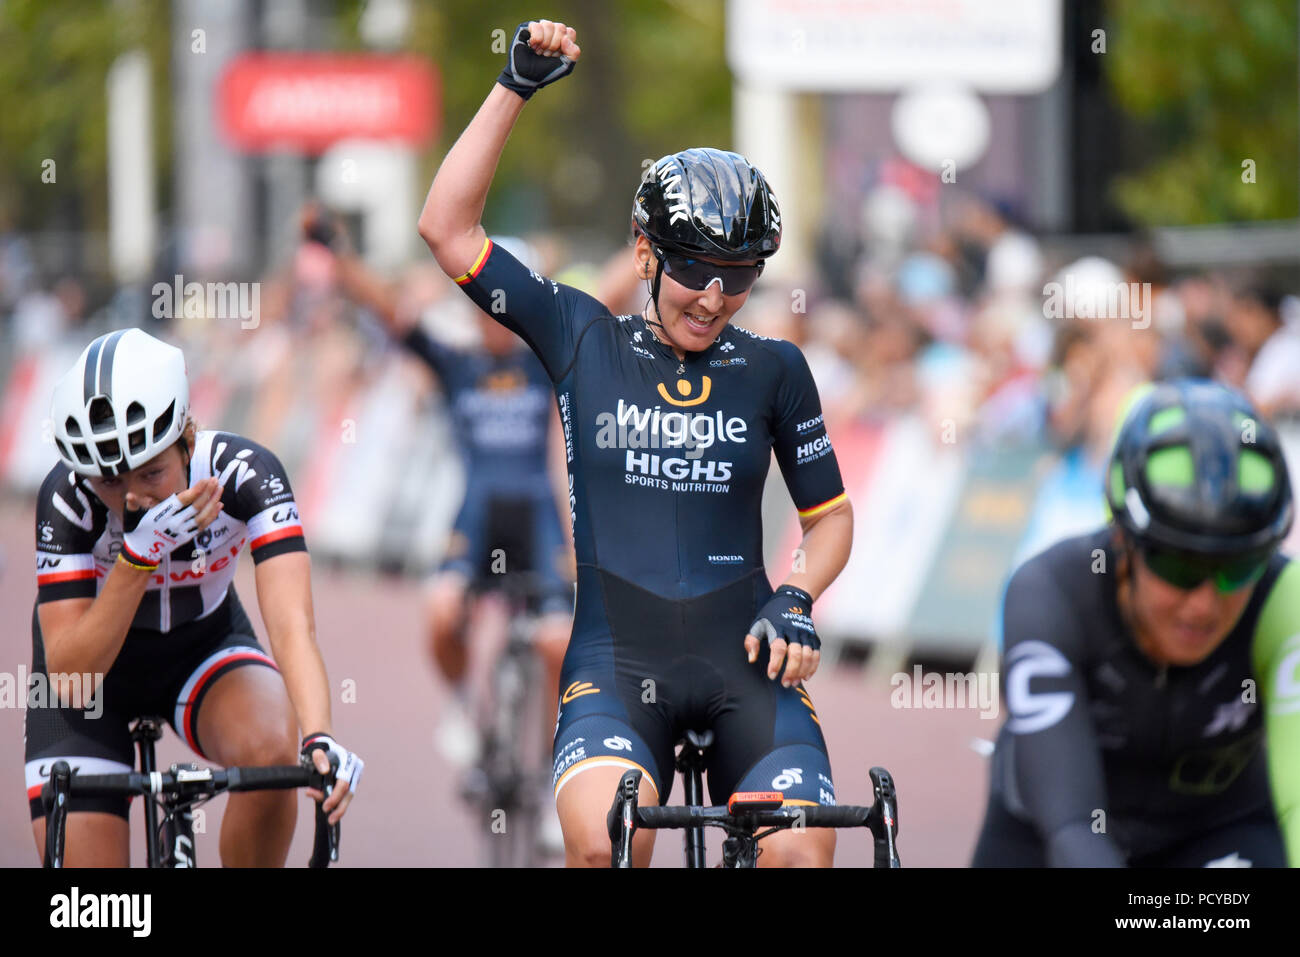 Wiggle High5 team female cyclist Lisa Brennauer at the Prudential RideLondon Classique women's cycle race celebrating team victory. The Mall, London Stock Photo